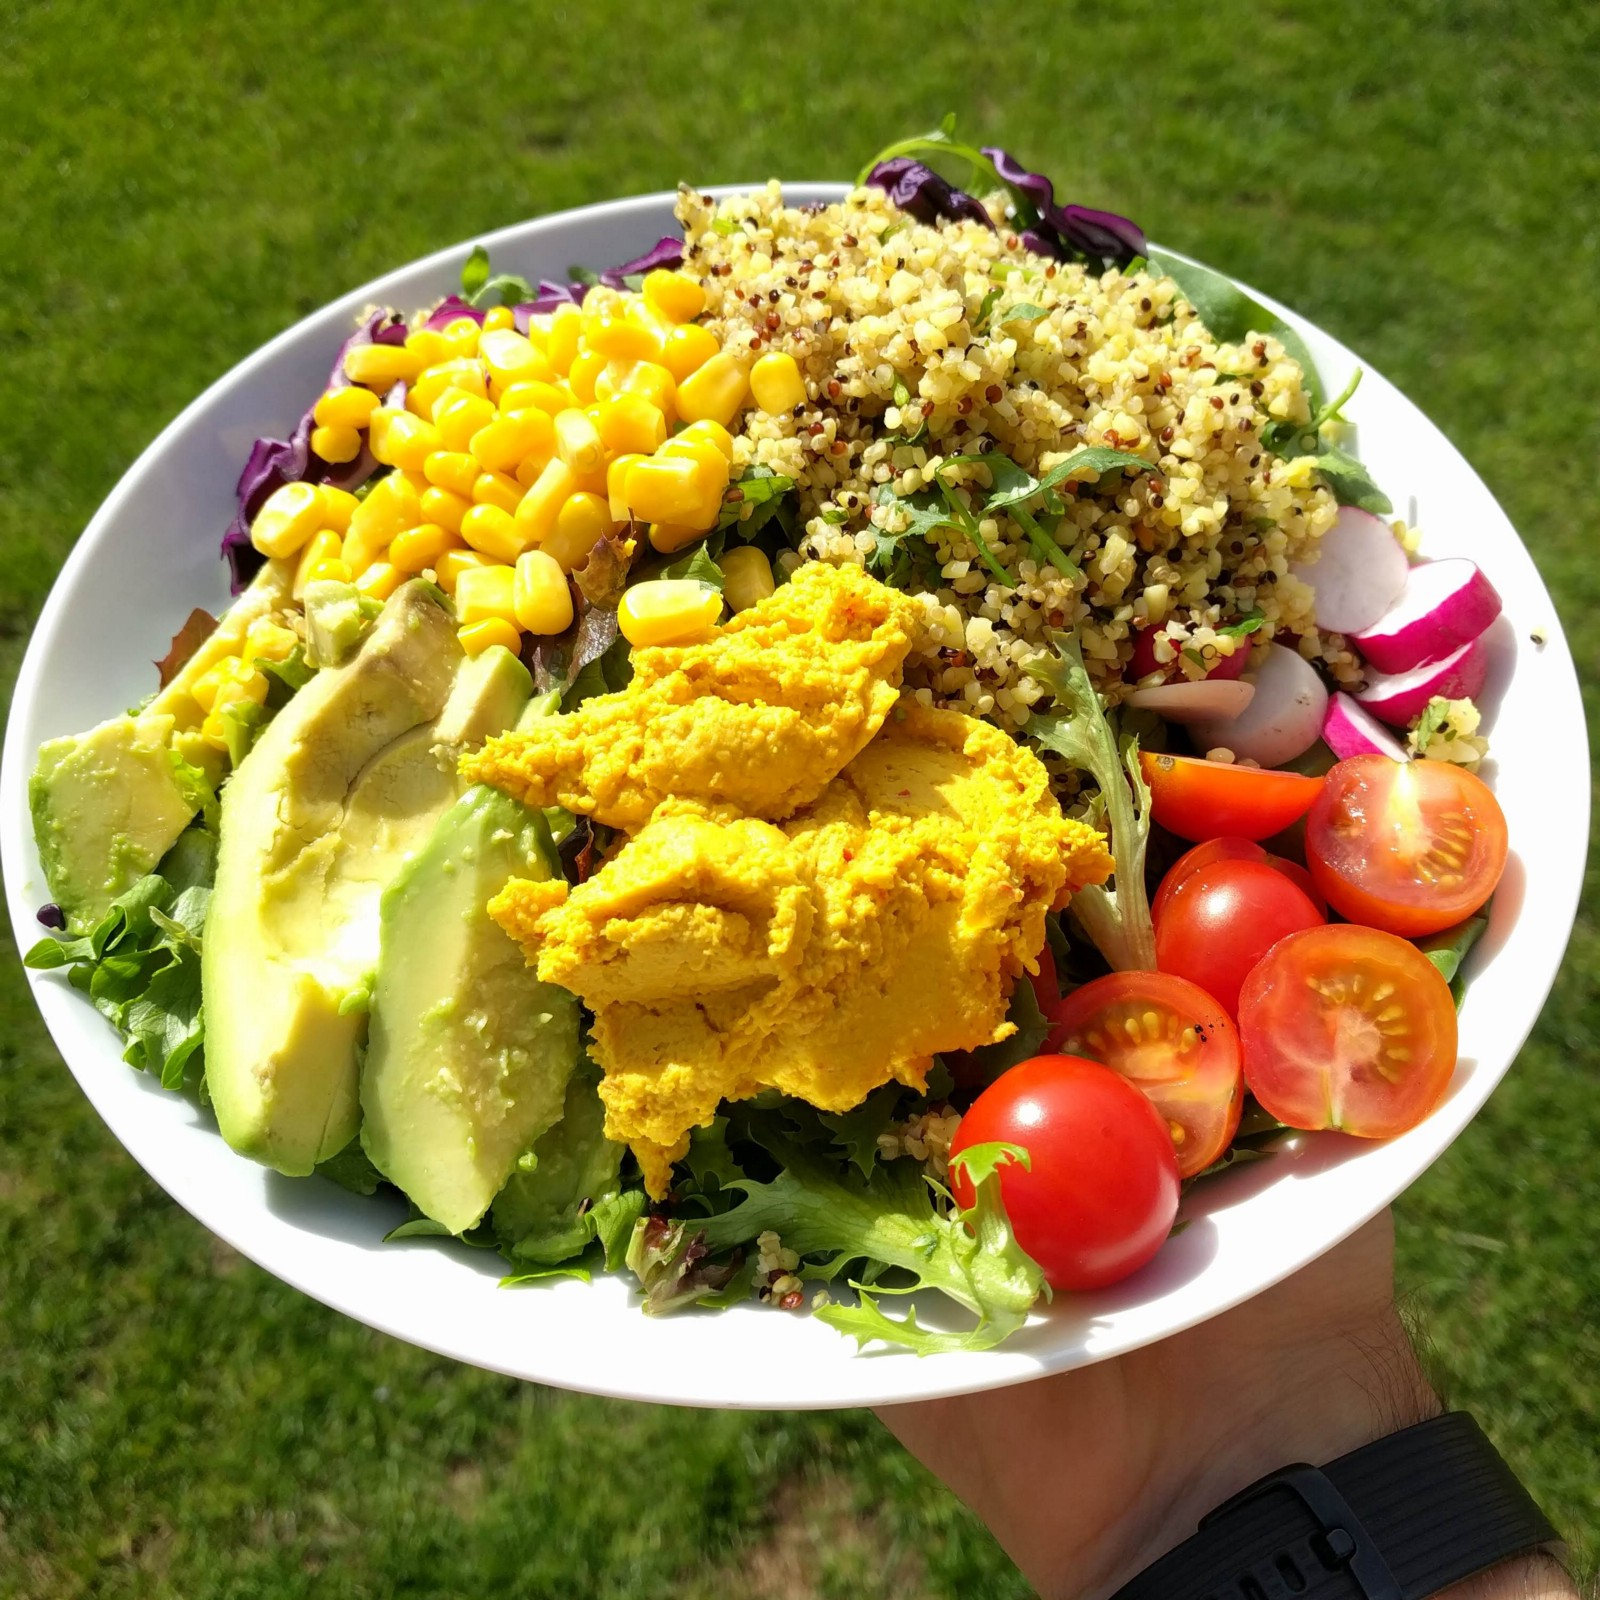 Where to find the best vegan food recipes on youtube forumfinder Gallery